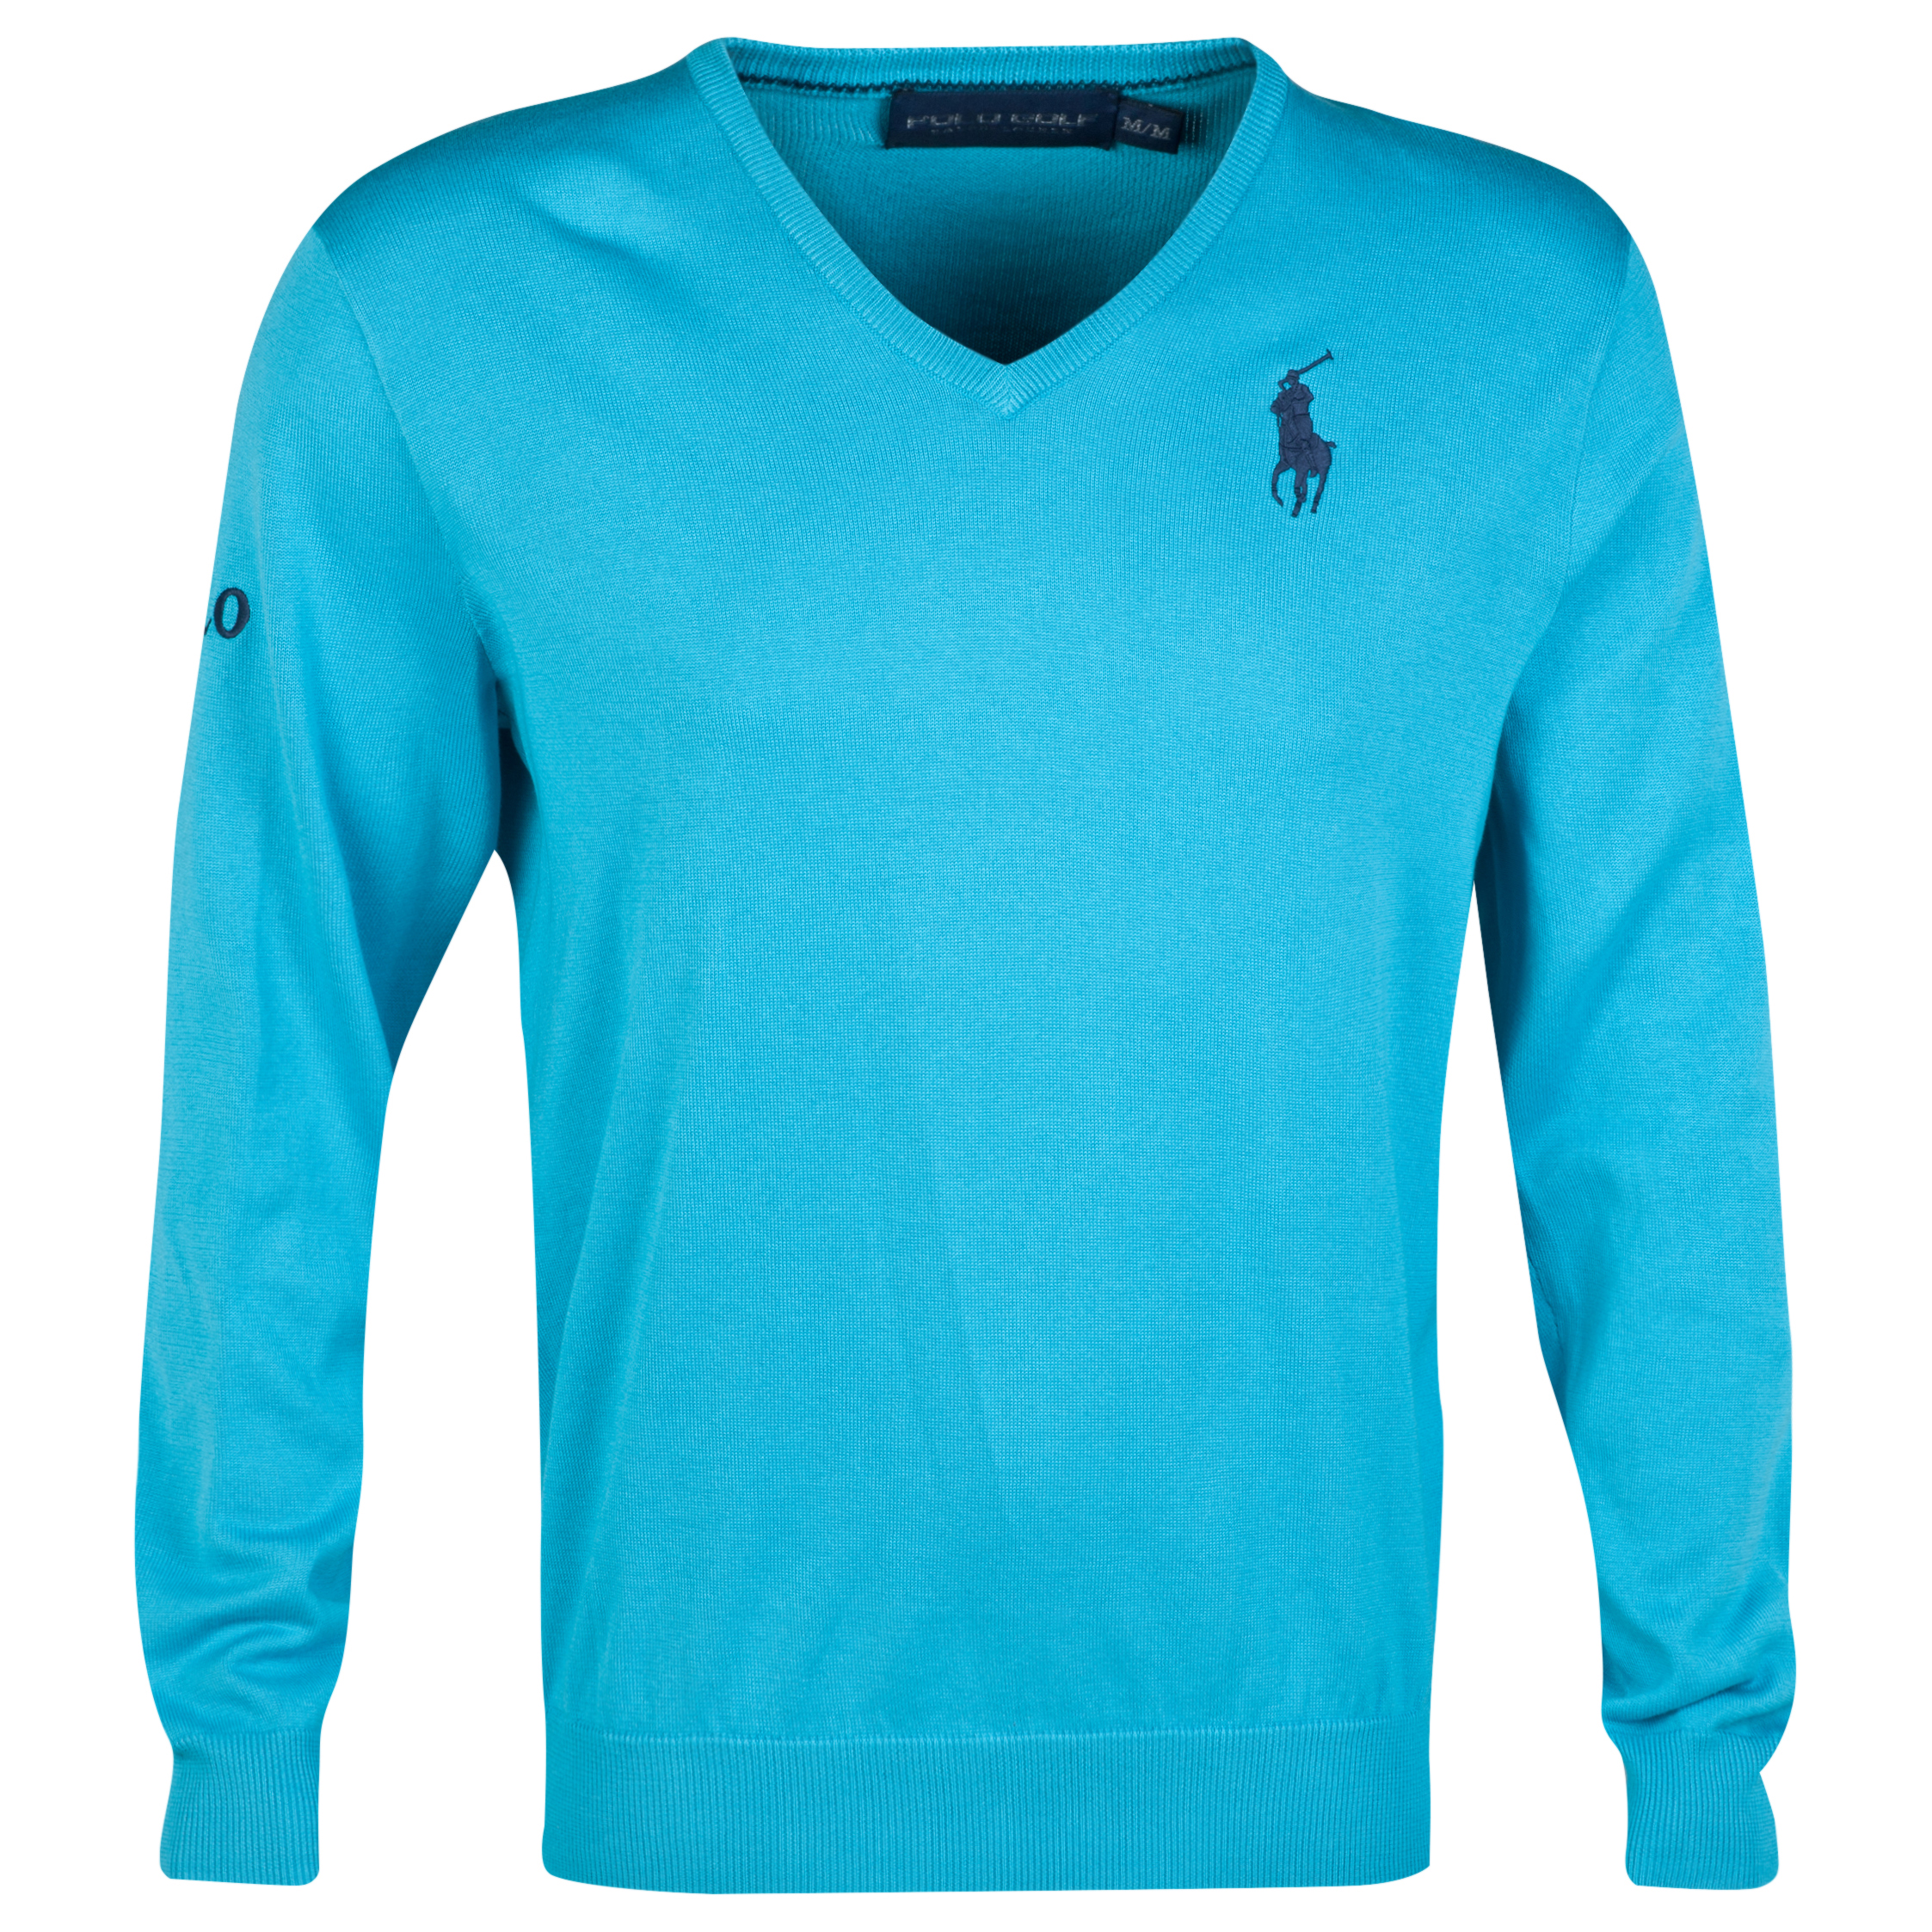 The Open Championship Royal Liverpool 2014 Big Pony Long Sleeve Sweater Blue